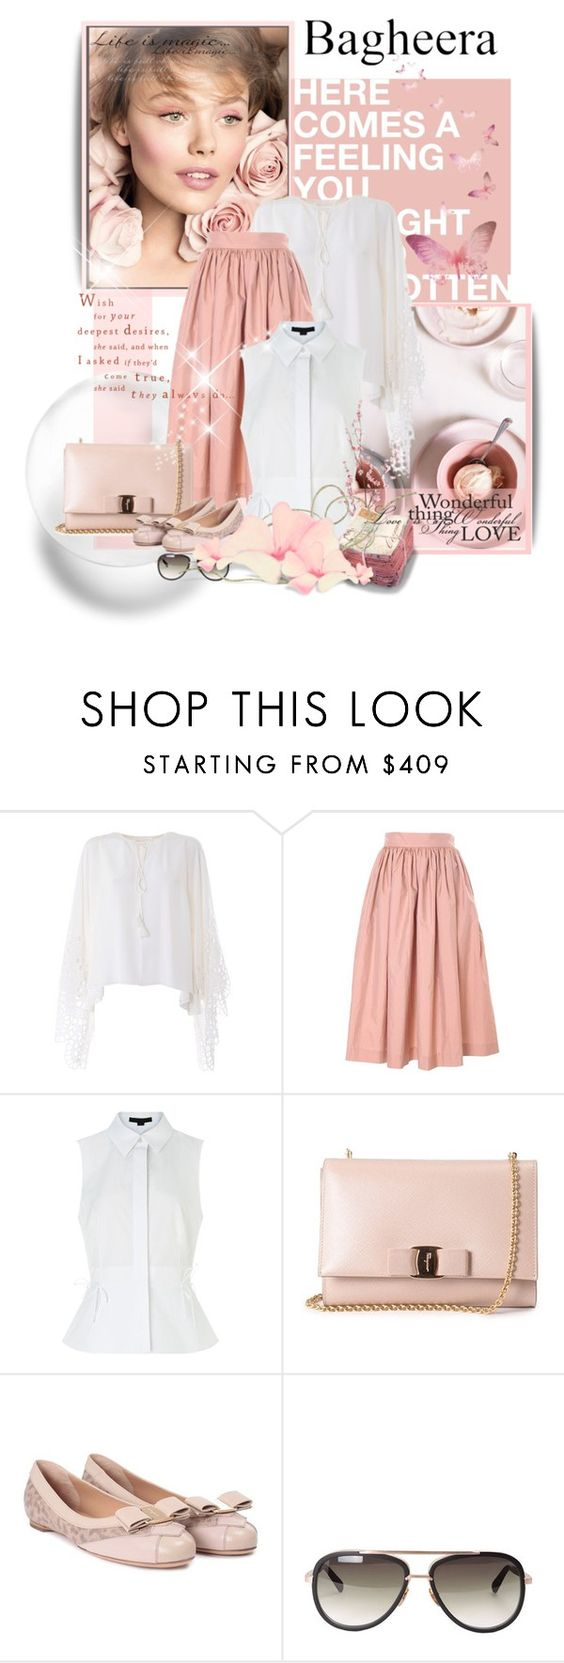 """""""Untitled #327"""" by zeljanadusanic ❤ liked on Polyvore featuring Chloé, Bagheera, Alexander Wang, Salvatore Ferragamo, Pier 1 Imports and bagheeraboutique"""